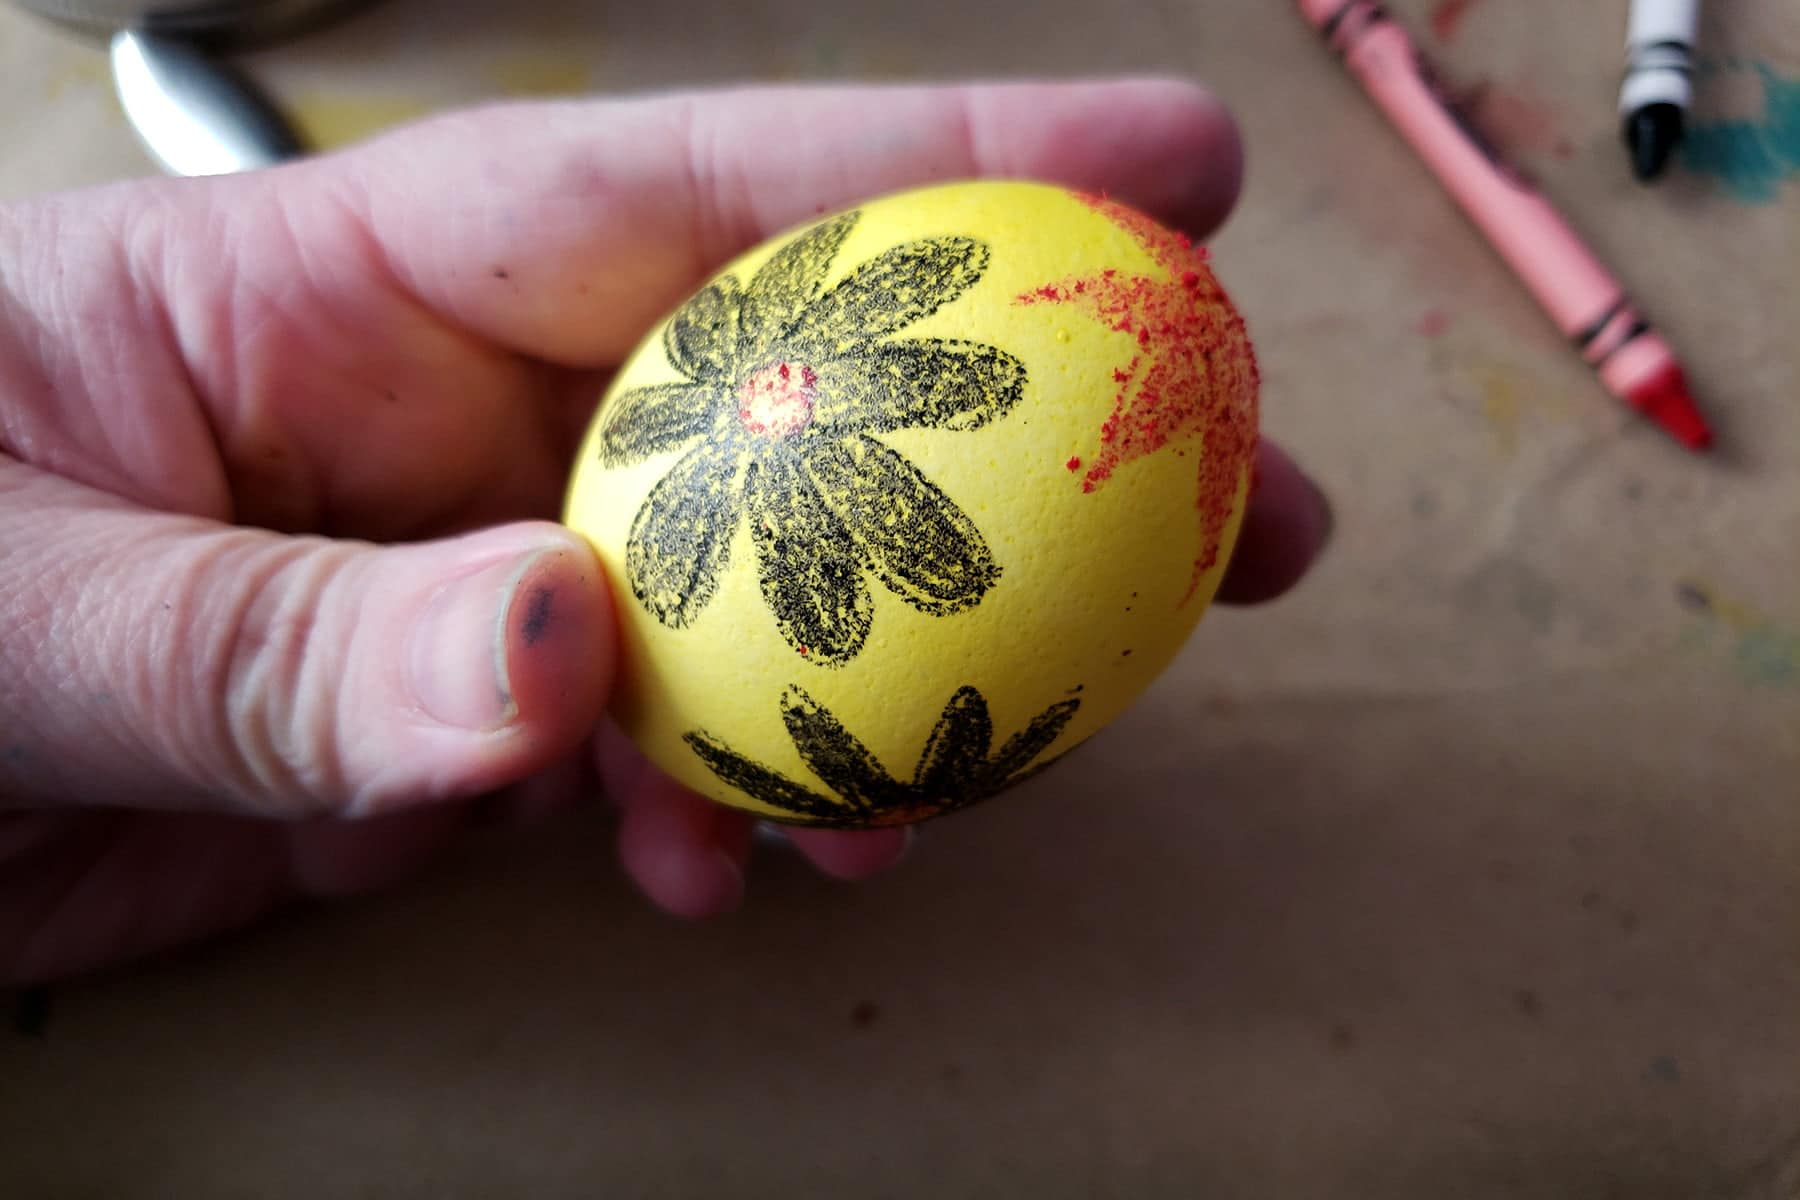 A yellow Easter egg has a black daisy and a red sun drawn onto it in wax.